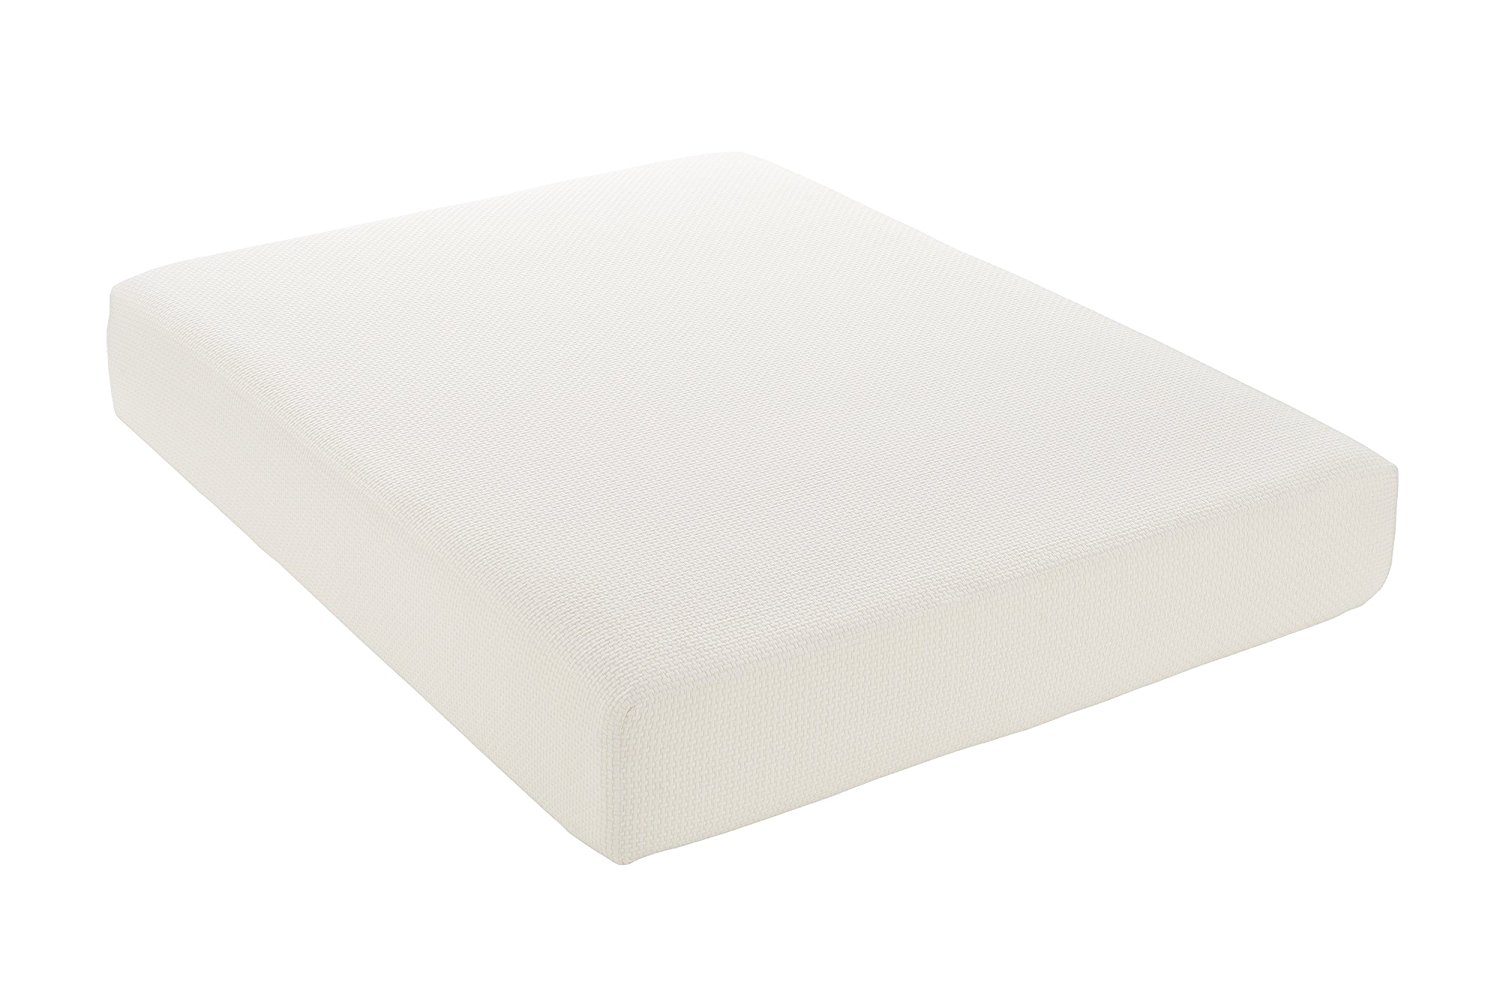 Signature luxury 8 inch memory foam mattress full size discount furniture warehouse Full size memory foam mattress